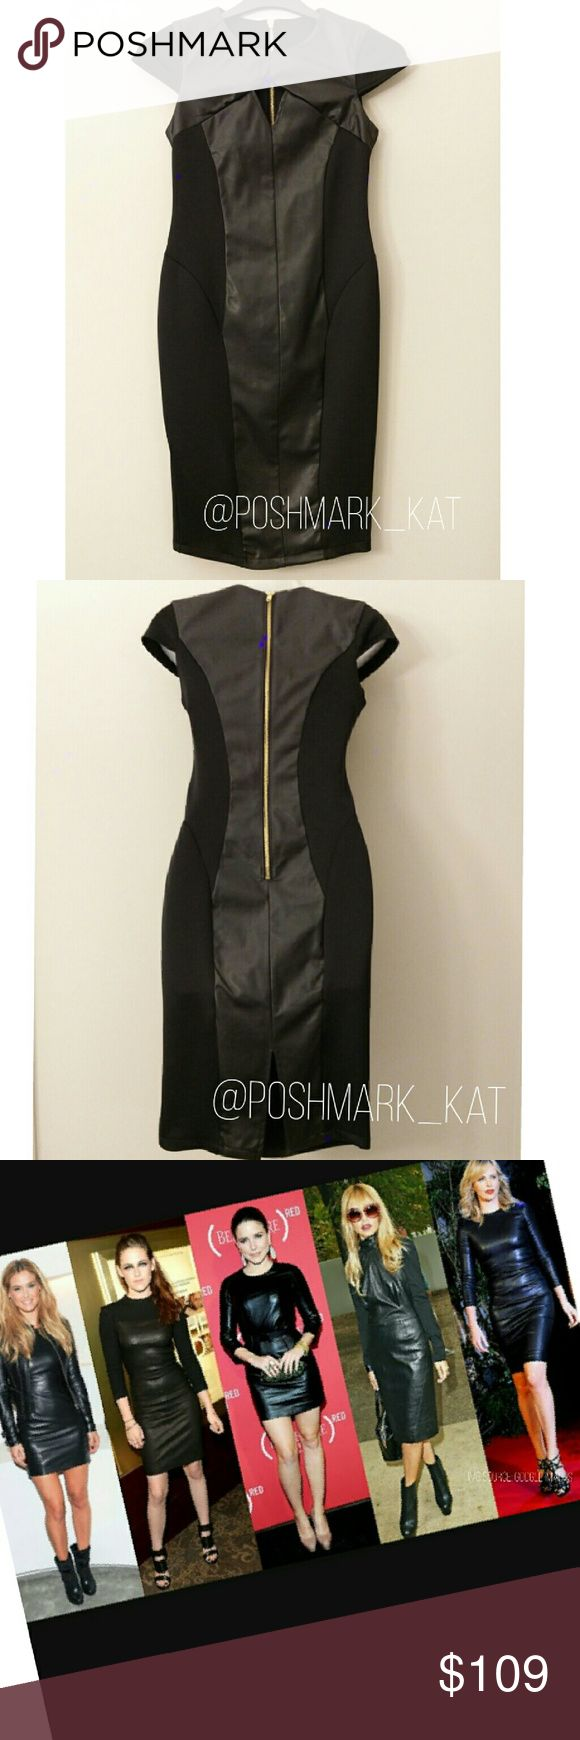 Leatherette Keyhole Dress Stunning Leatherette Dress  Color: Black Available sizes: S,M,L,XL  -Leatherette/ Bodycon contrast  -Hourglass cutting -Back zipper closure -Stretchable material -Back slit -Cap sleeves Fabulous LBD for fall & winter!  Brand New with tags    Dresses